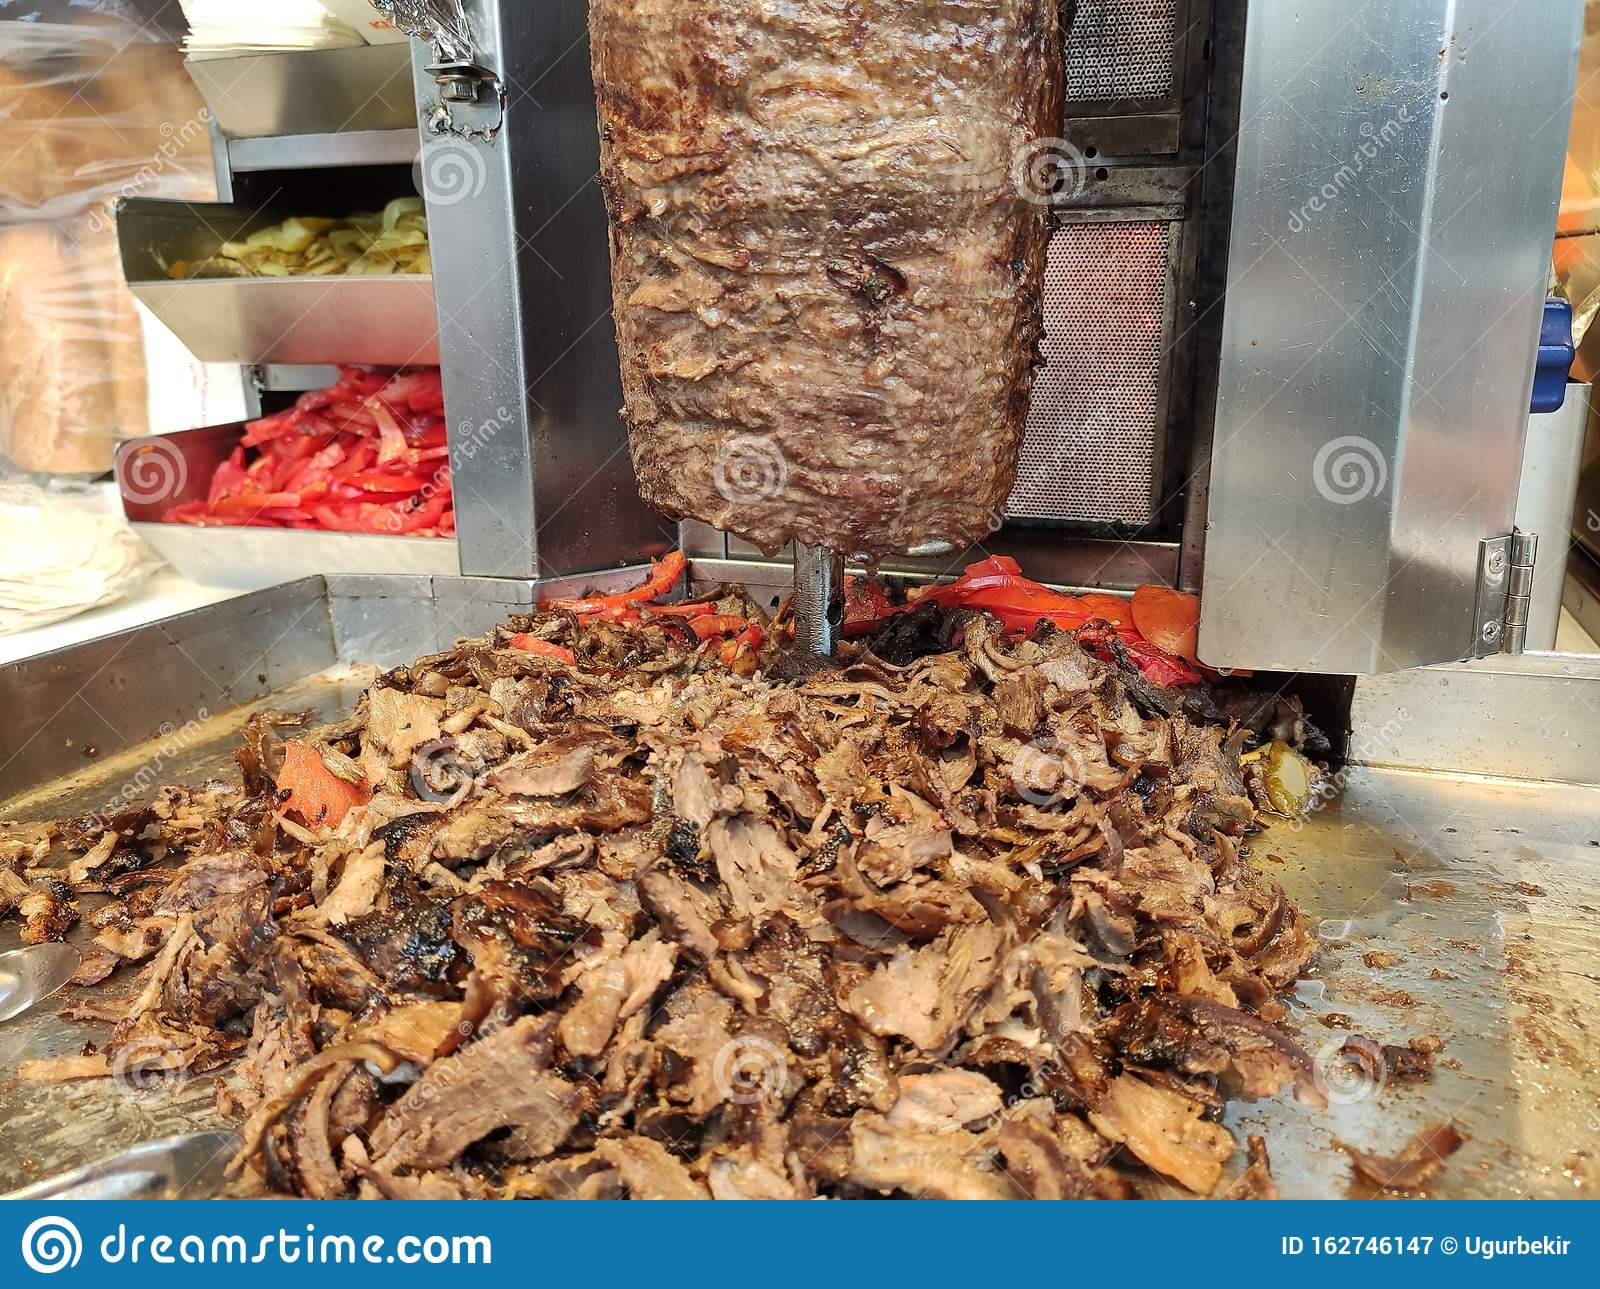 Bbq Meat For Turkish Doner Kebab In A Restaurant In Istanbul Stock Image Image Of Cooked Fried 162746147